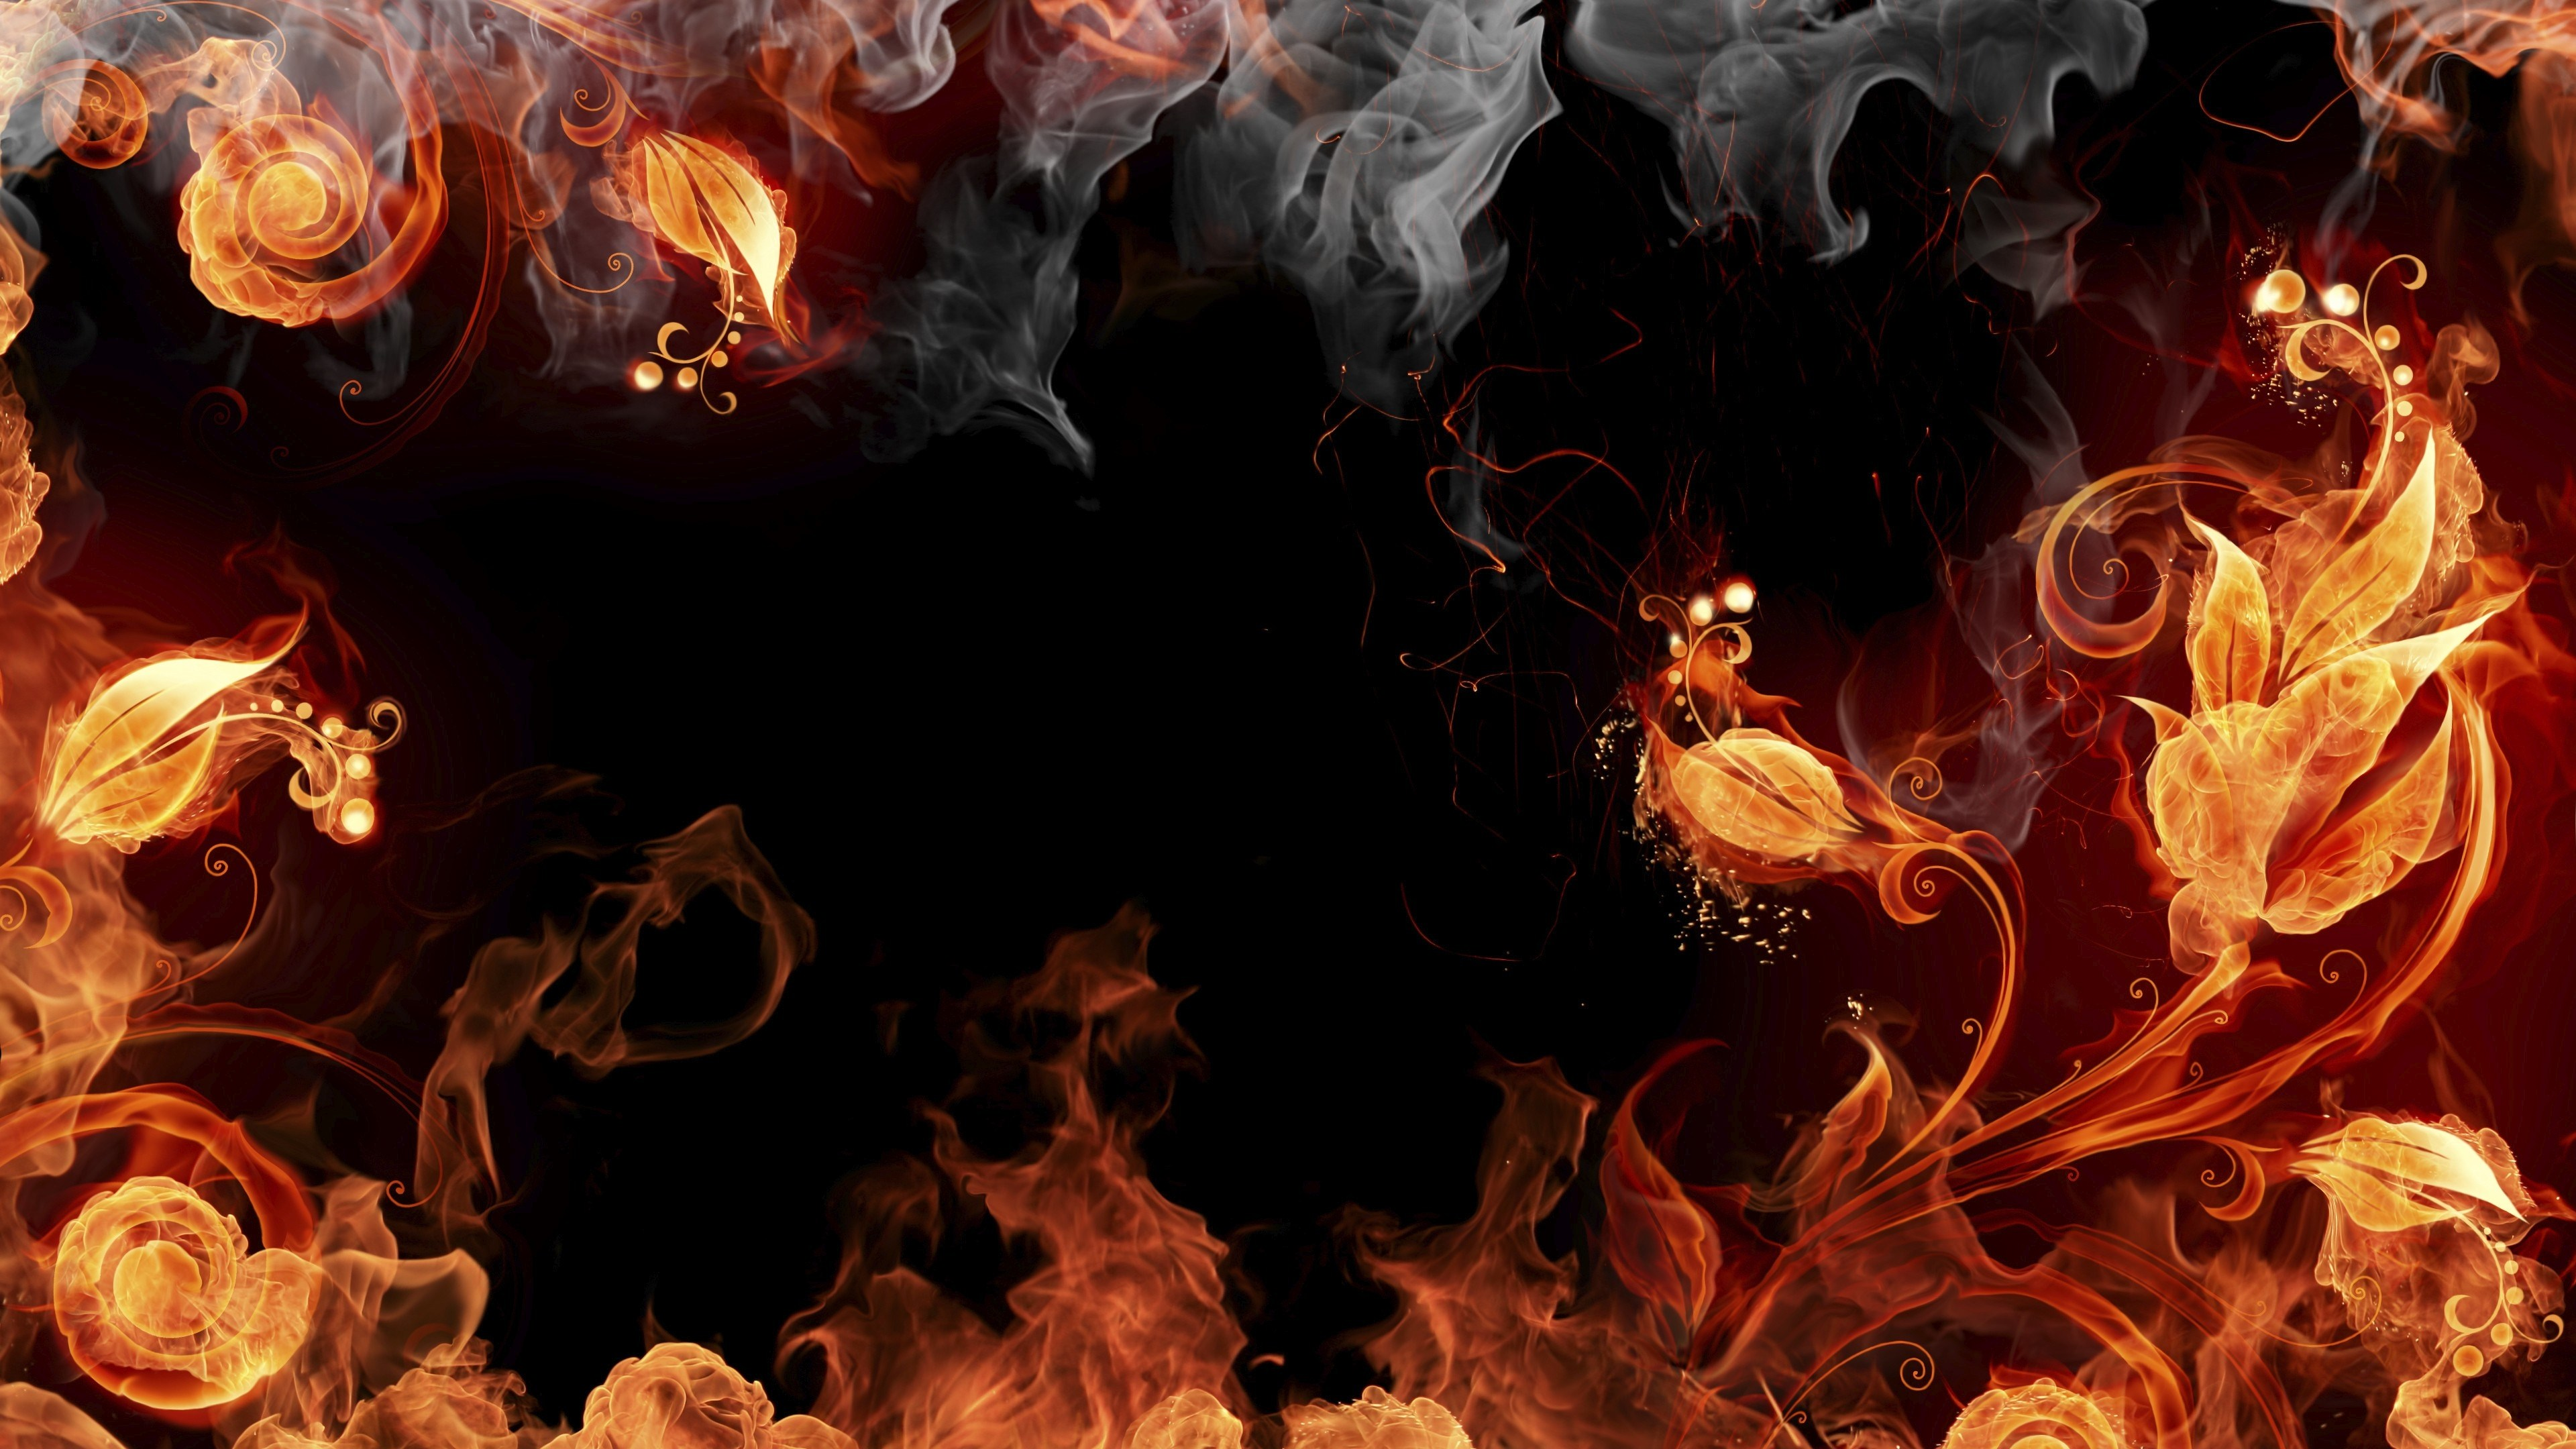 Fire Smoke Flowers 4k Wallpaper 3840x2160